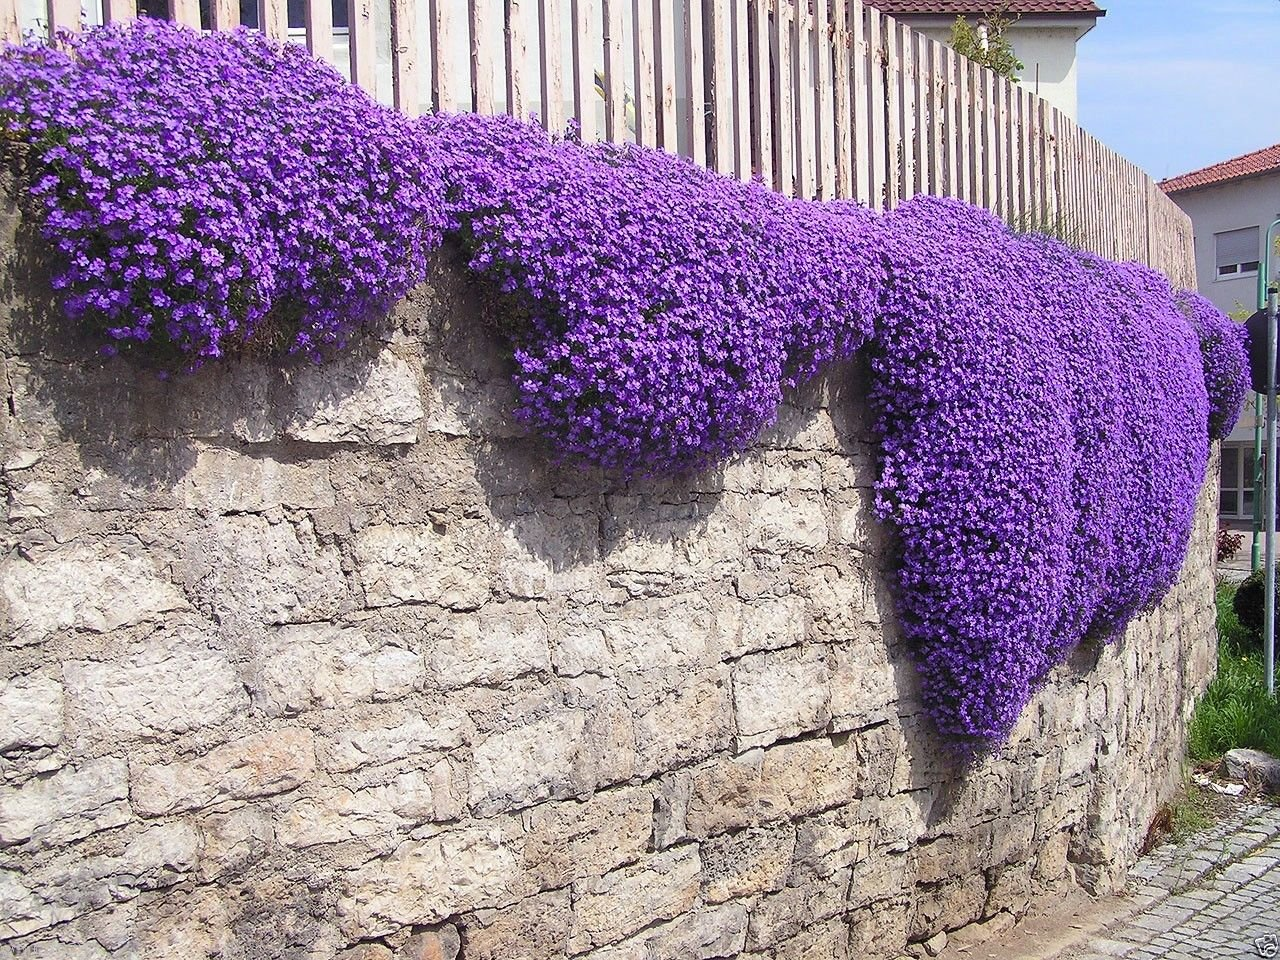 Amazon 250 aubrieta seeds cascade purple flower seeds amazon 250 aubrieta seeds cascade purple flower seeds perennial deer resistant garden outdoor mightylinksfo